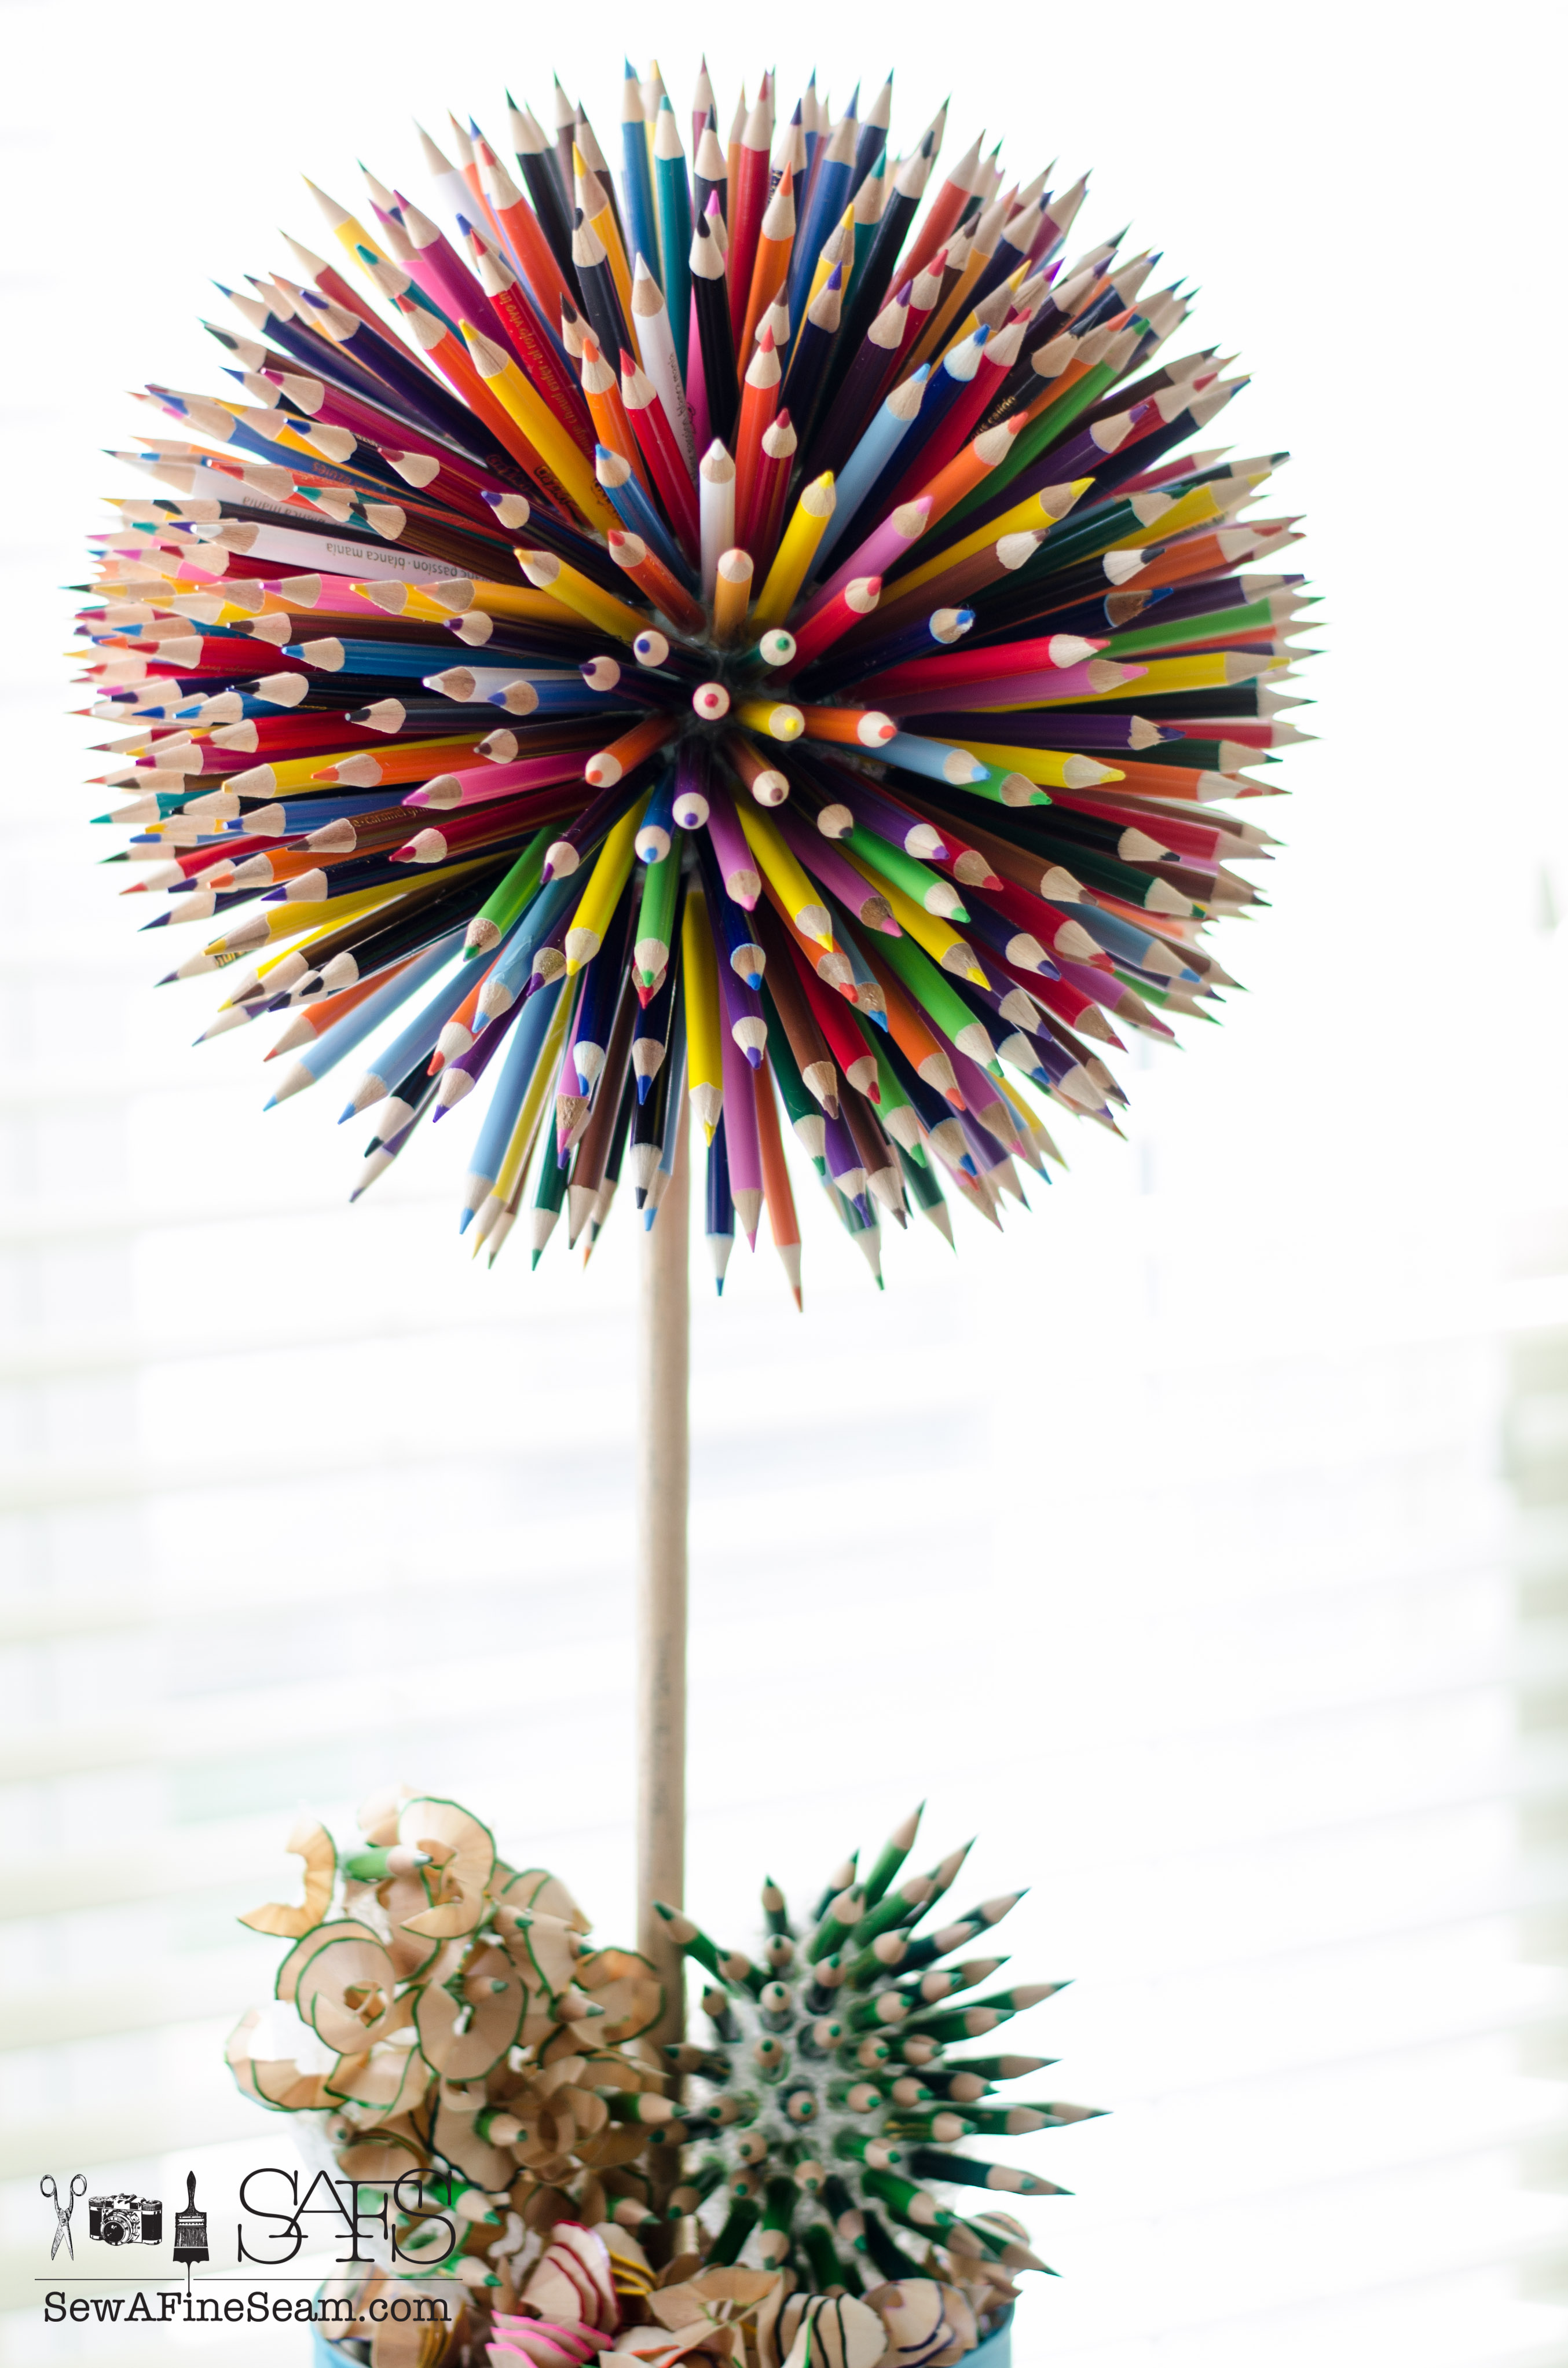 Colored Pencil Craft Flower In A Paint Bucket Sew A Fine Seam